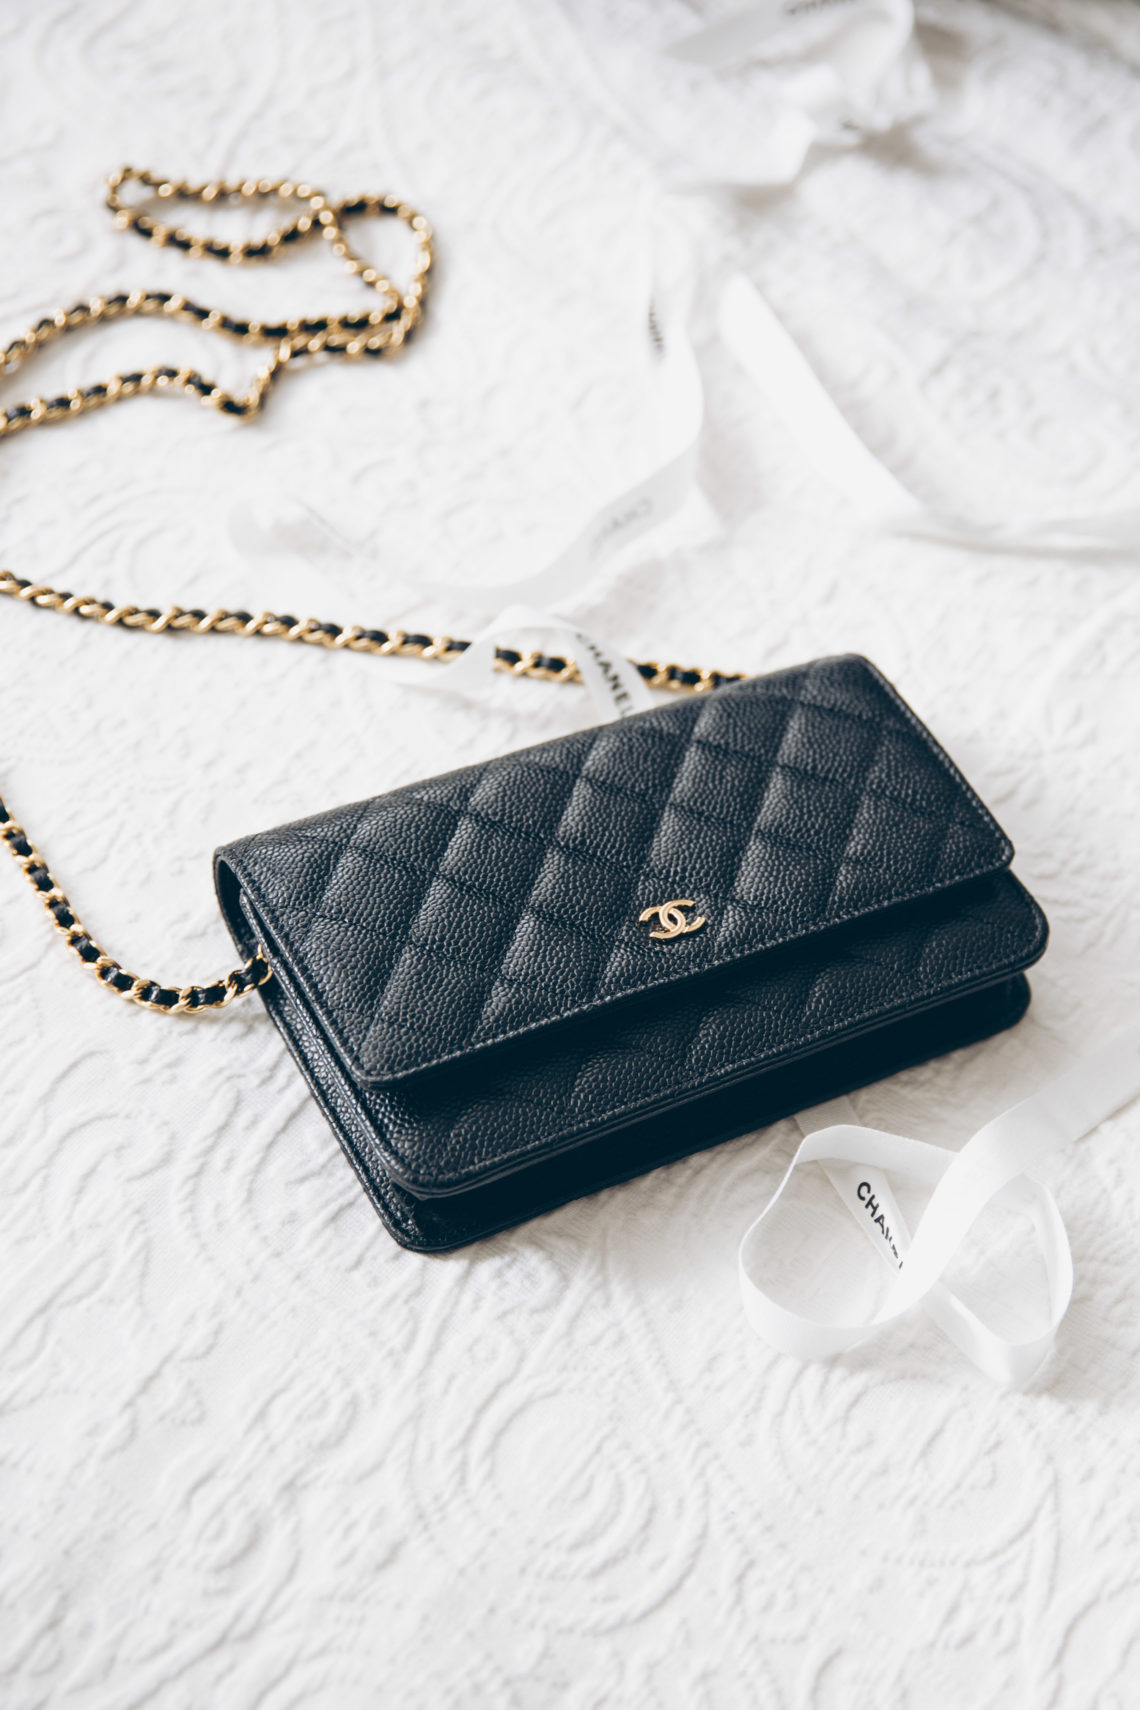 fc178dddb873 Review: Chanel Wallet on Chain WOC - You rock my life